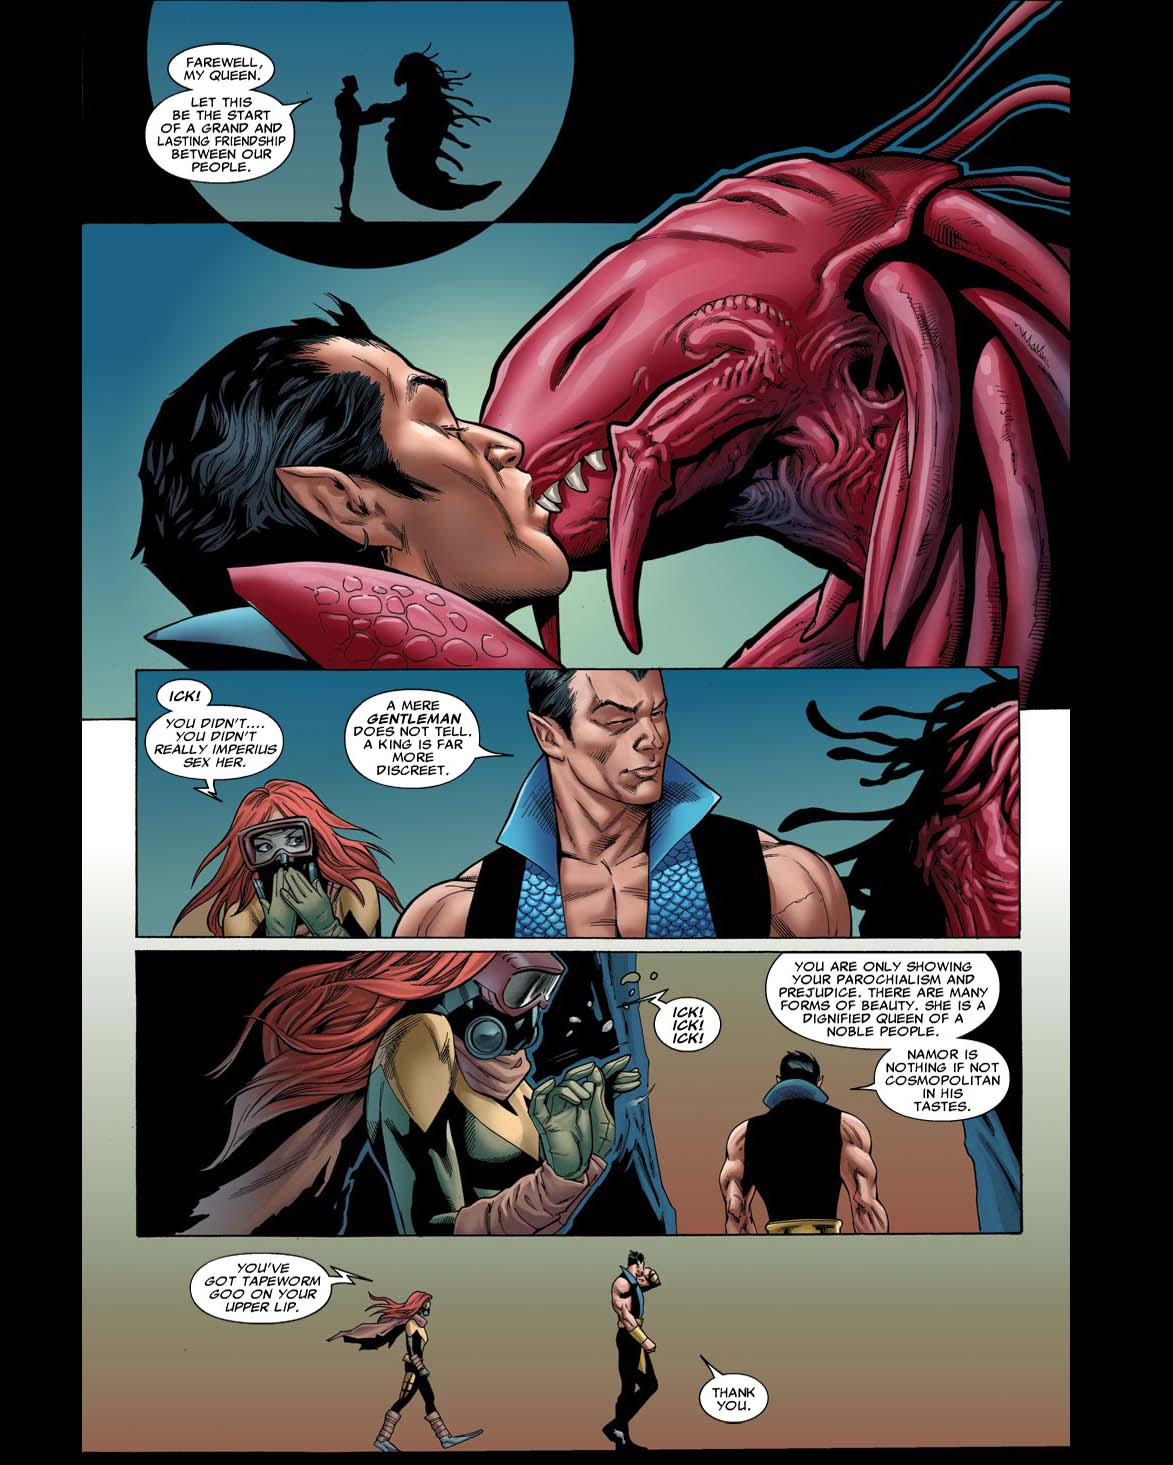 Aliens Cute Wallpaper Sub Mariner Comic Book Tv Tropes